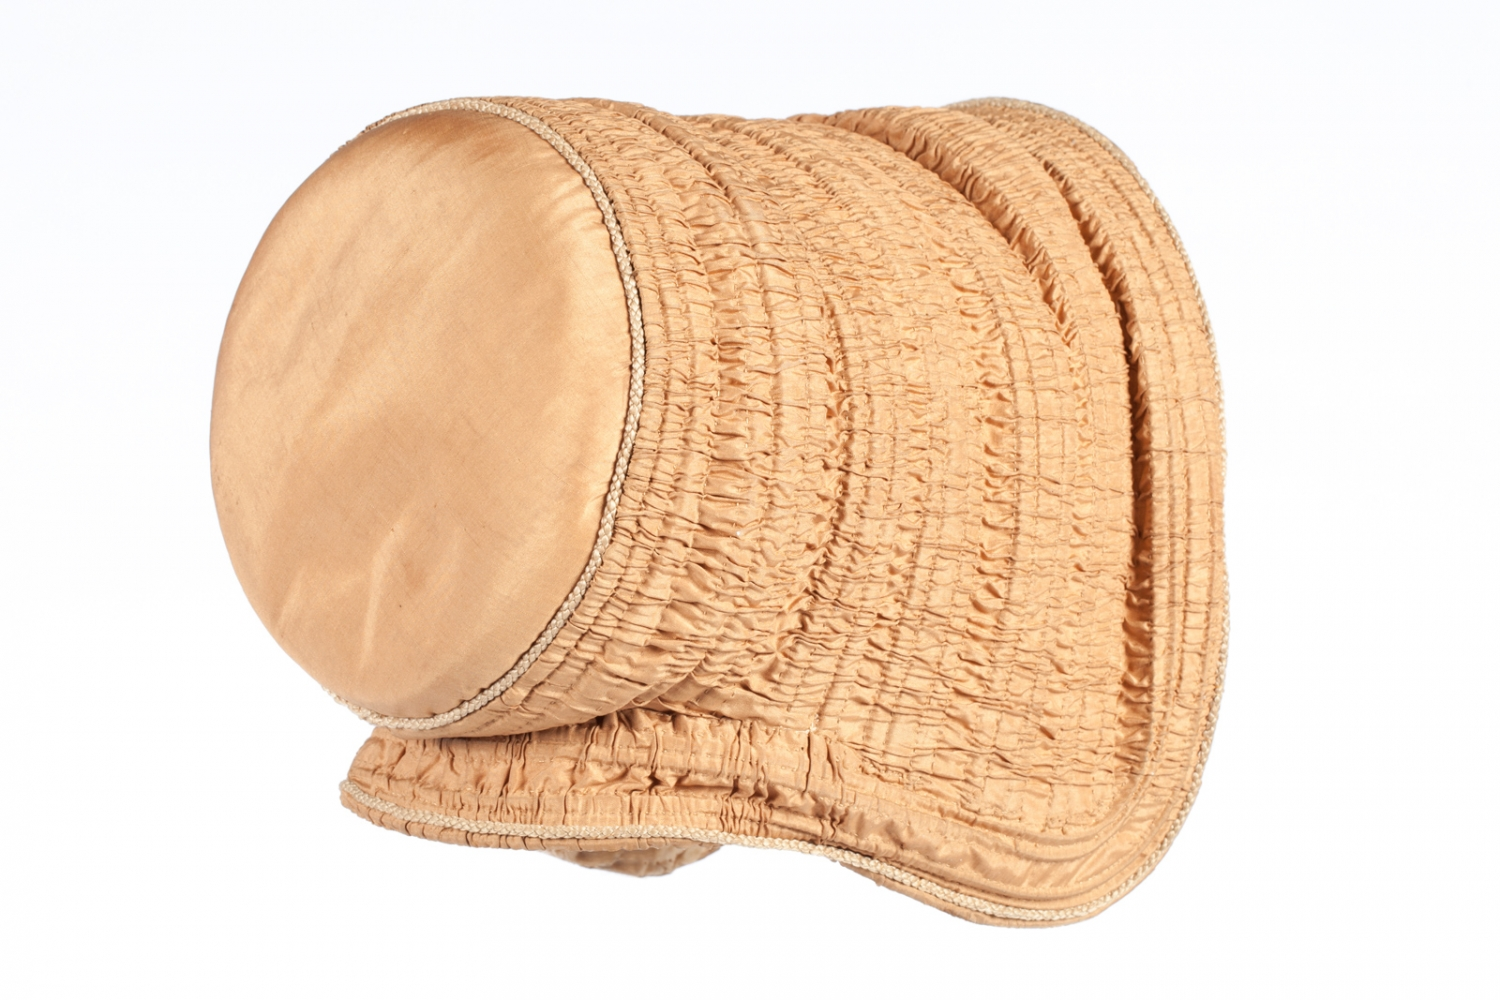 This is an example of a drawn bonnet, a bonnet where fine fabric is ruched - or drawn - over a series of supports, usually cane or whalebone hoops